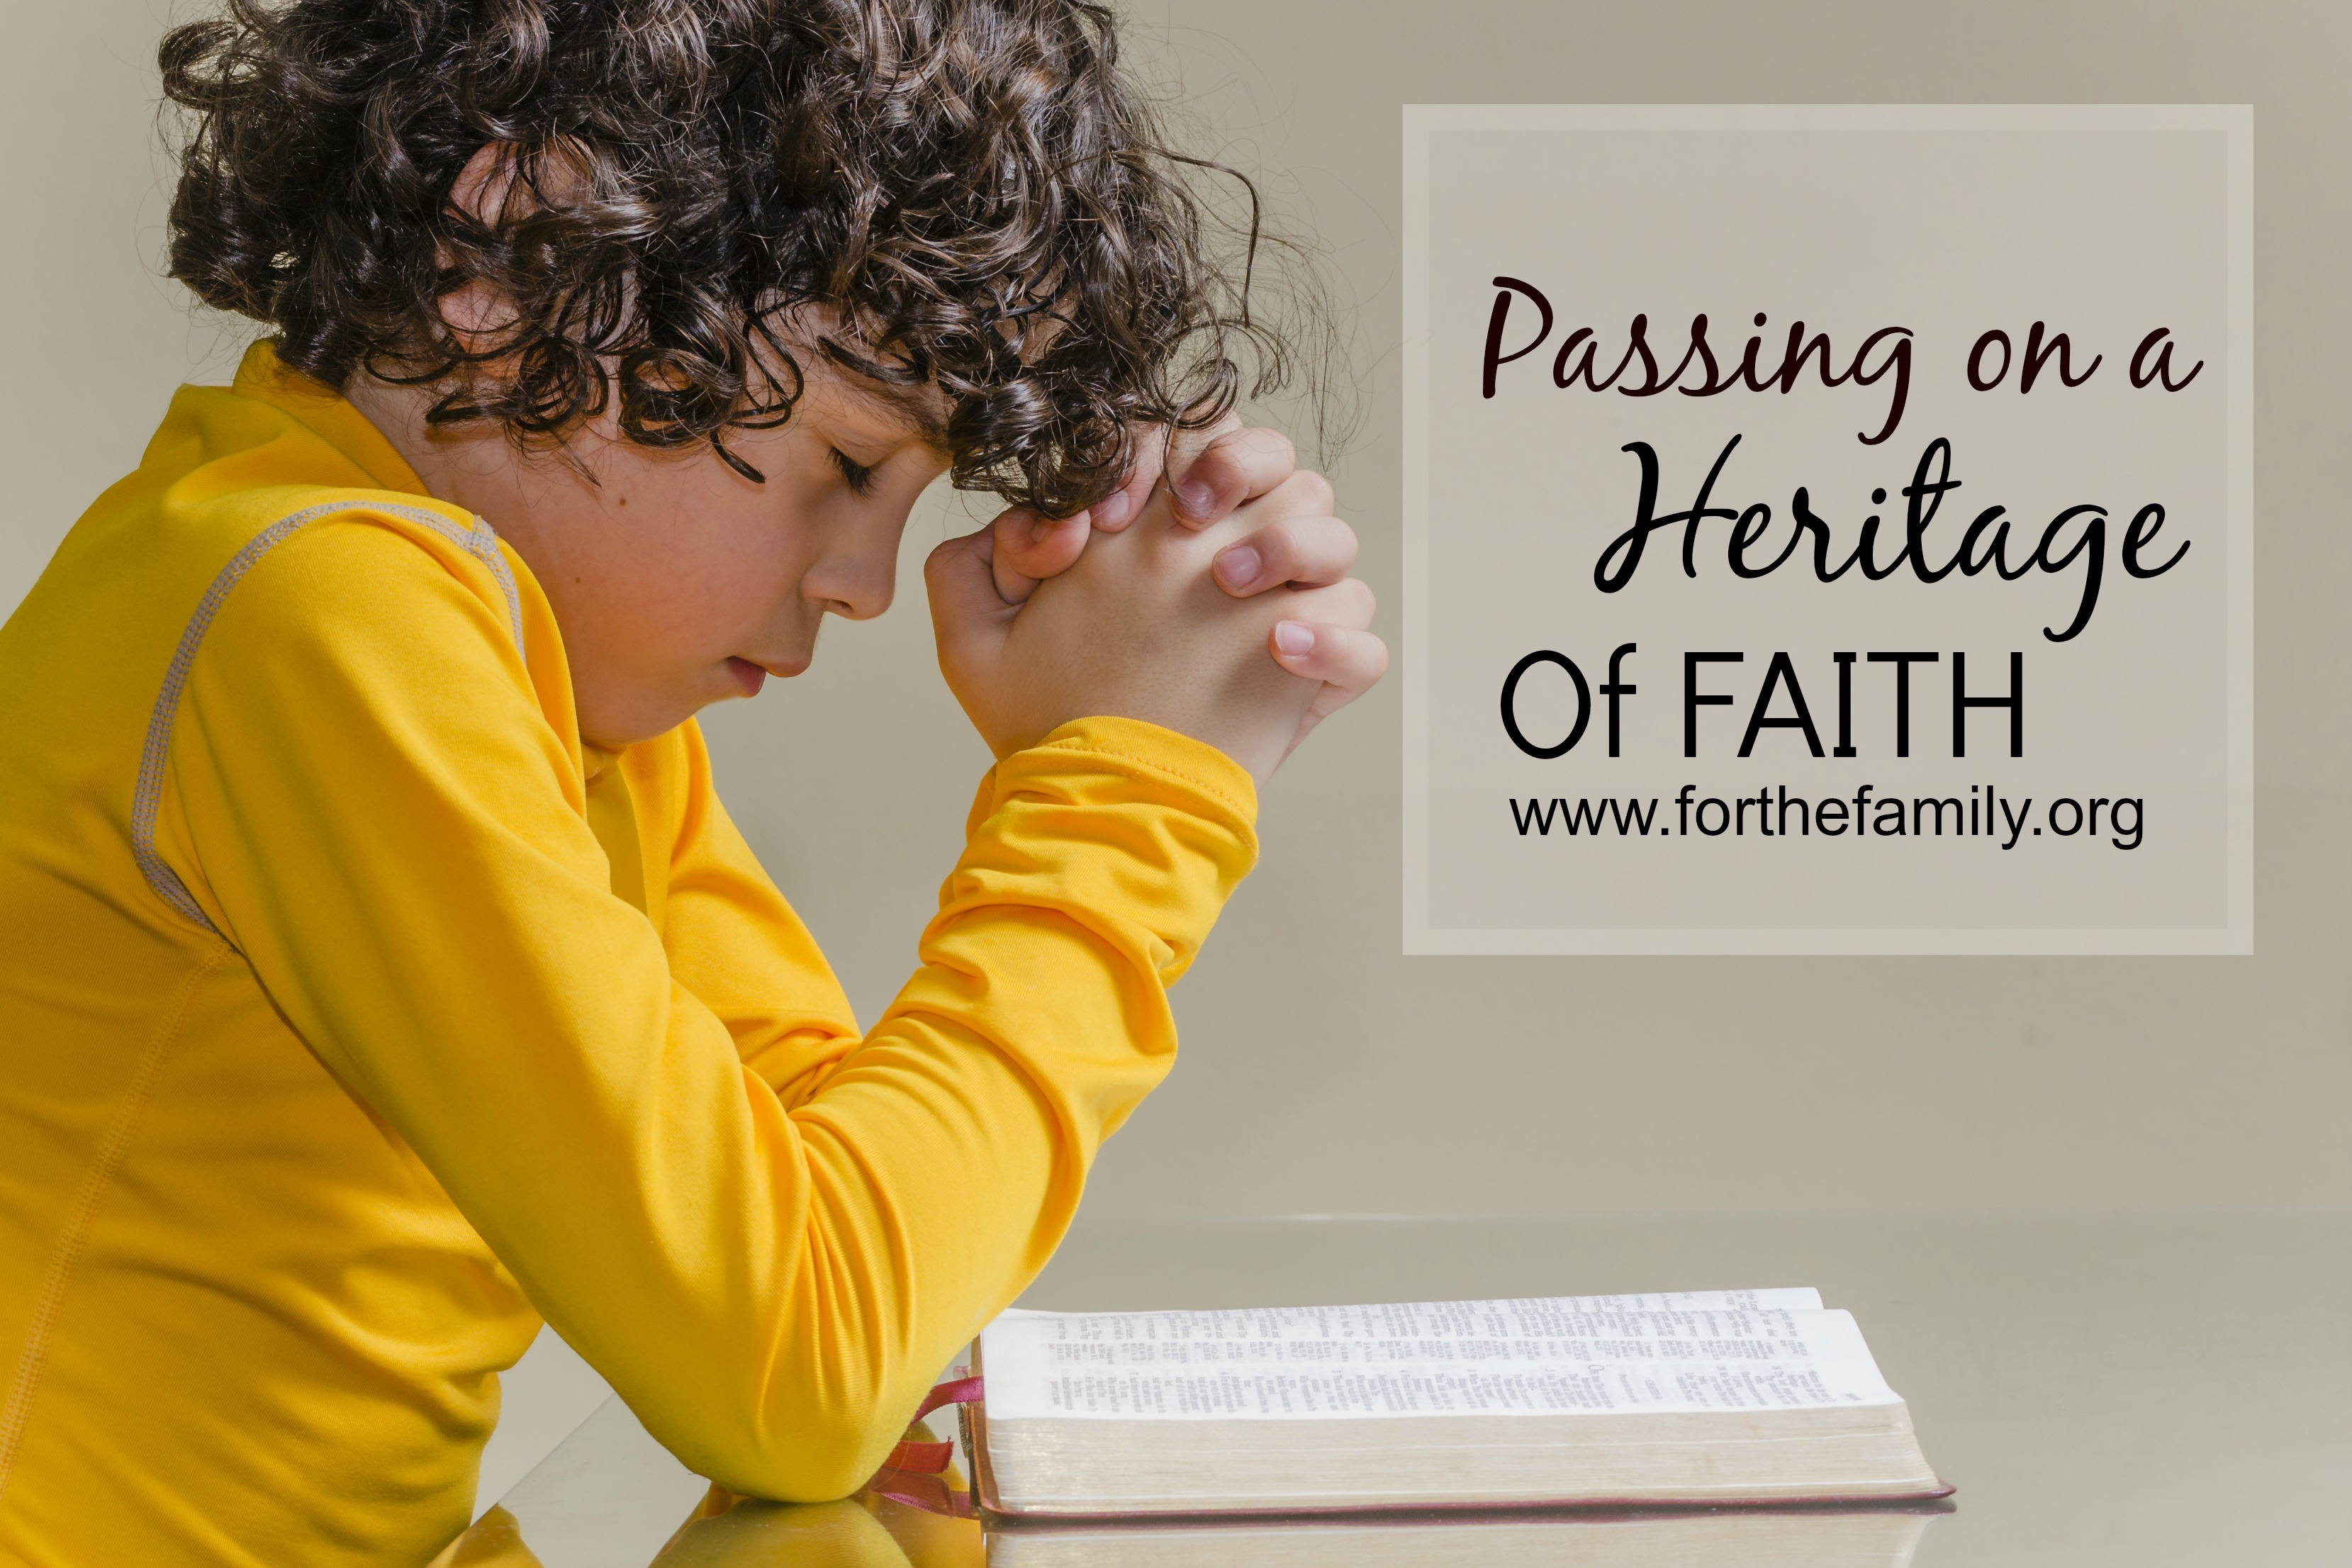 Passing on a Heritage of Faith